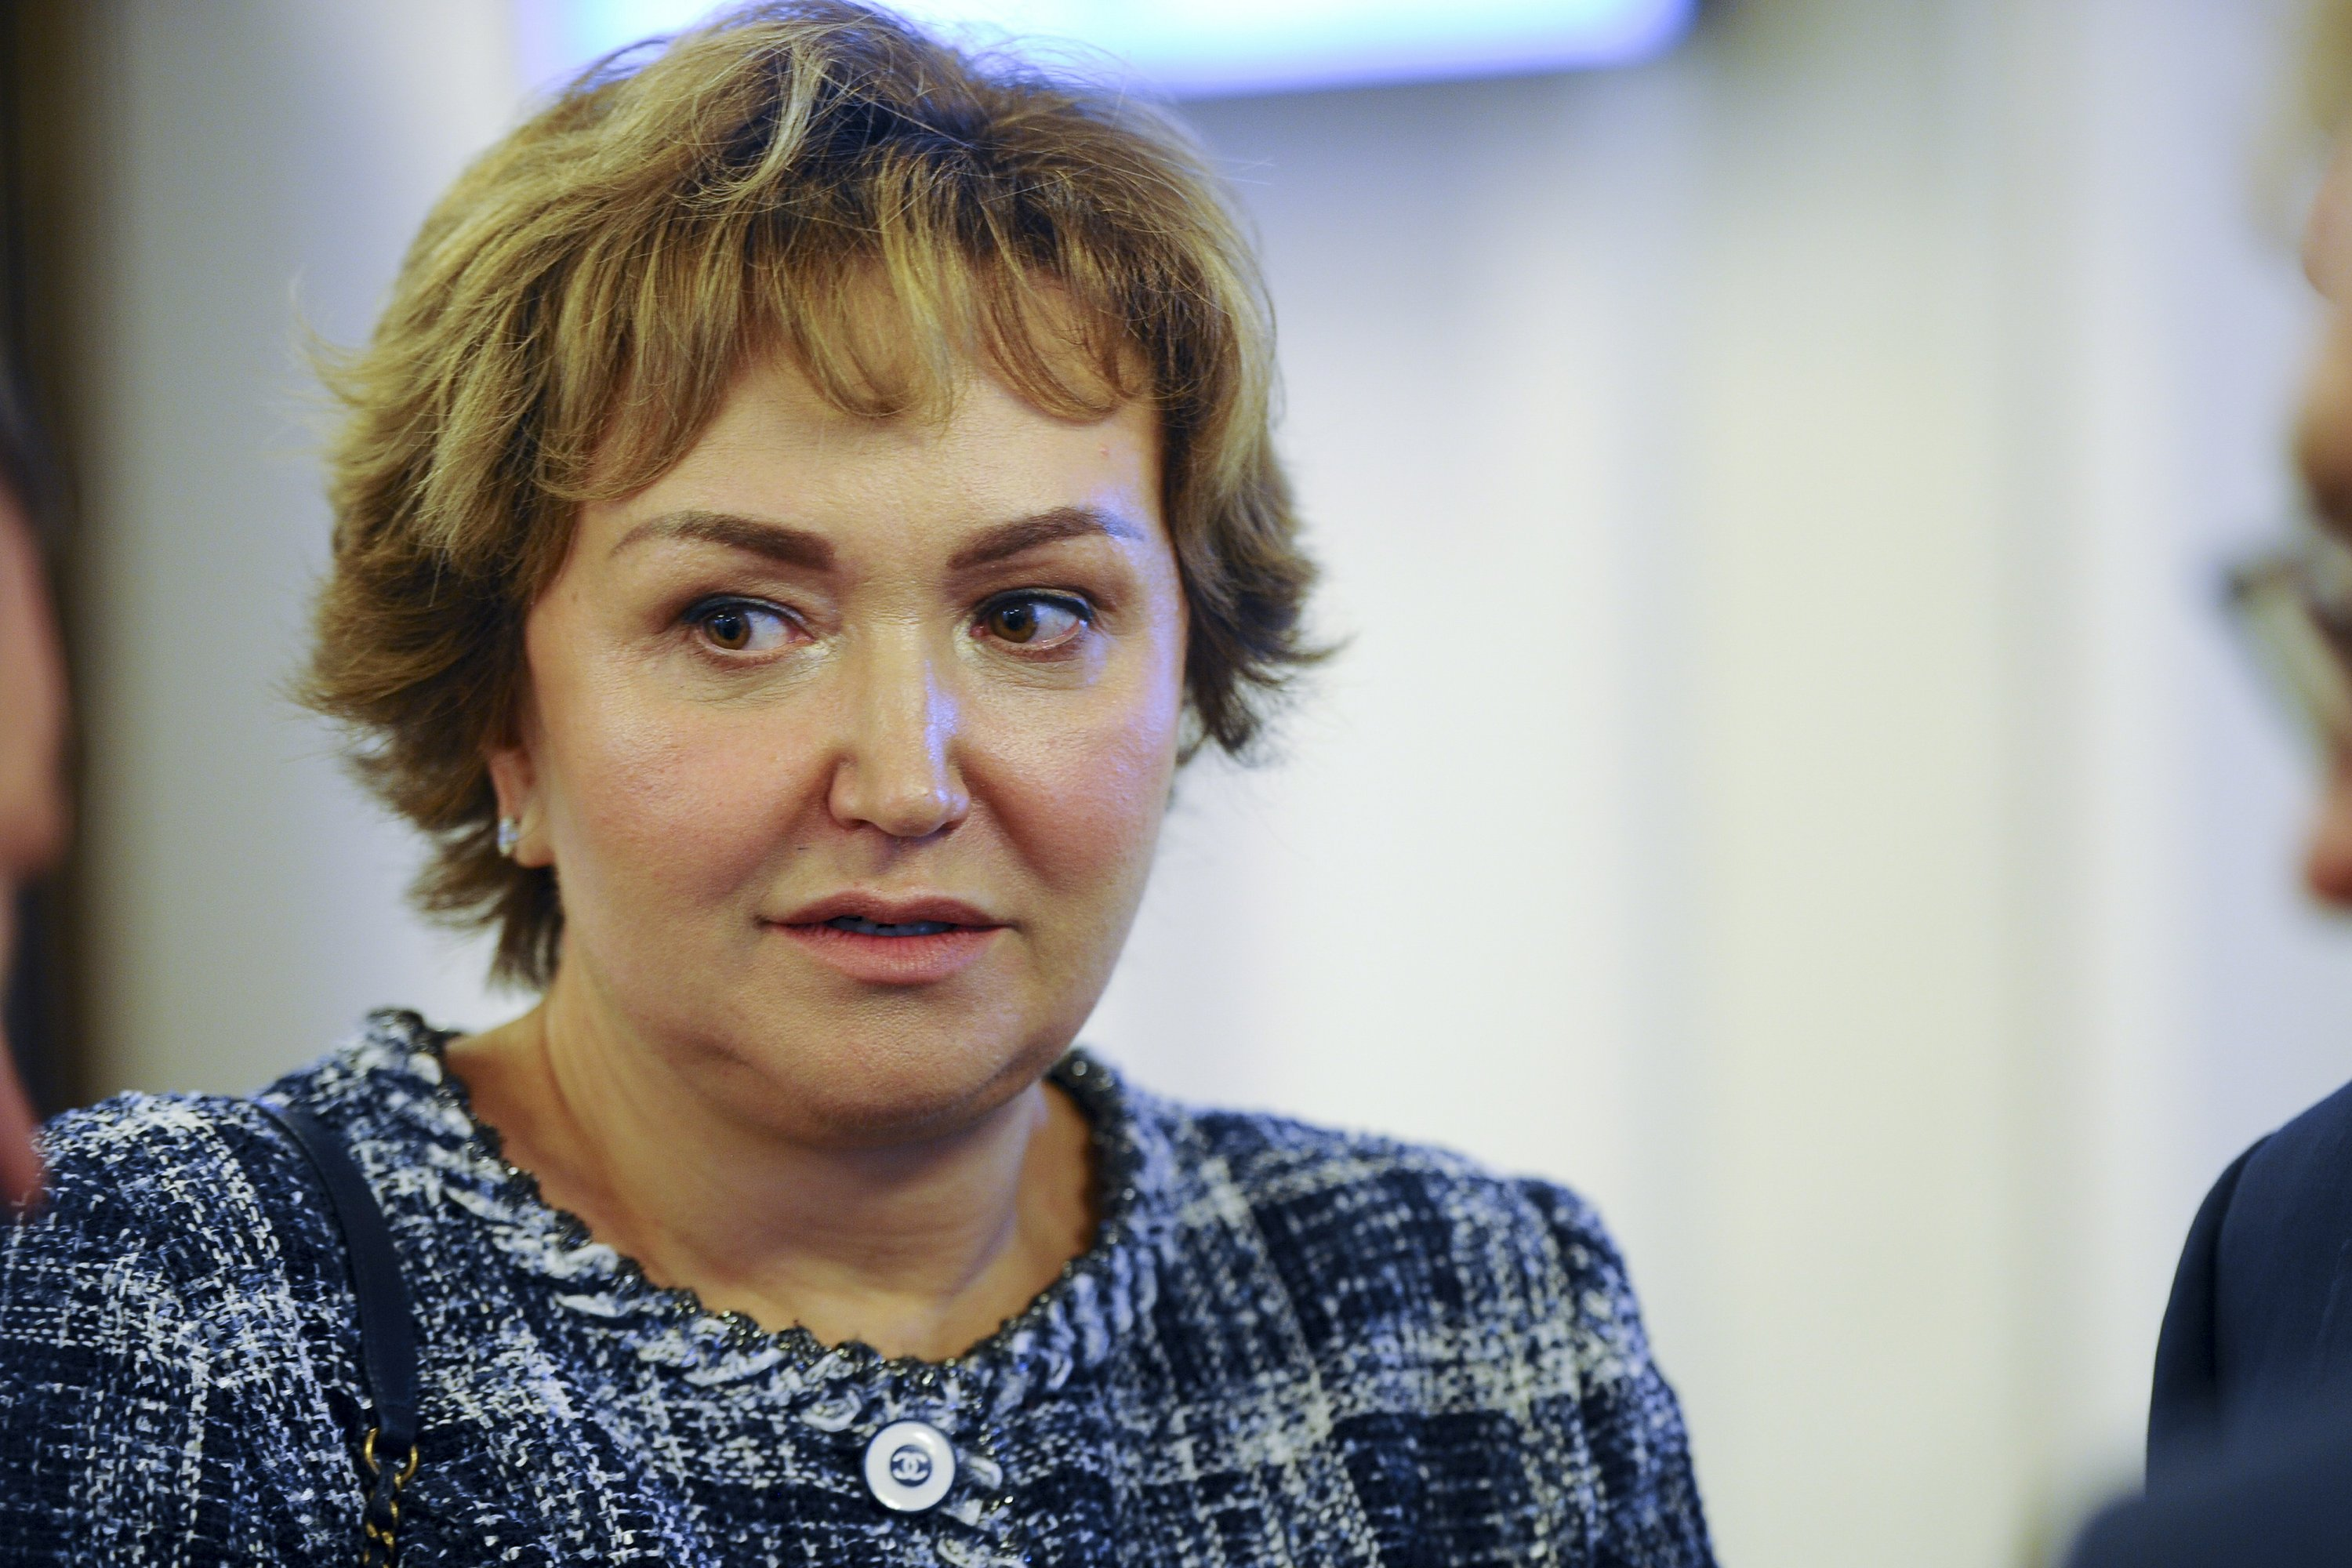 One of Russia's richest women dies in plane crash in Germany